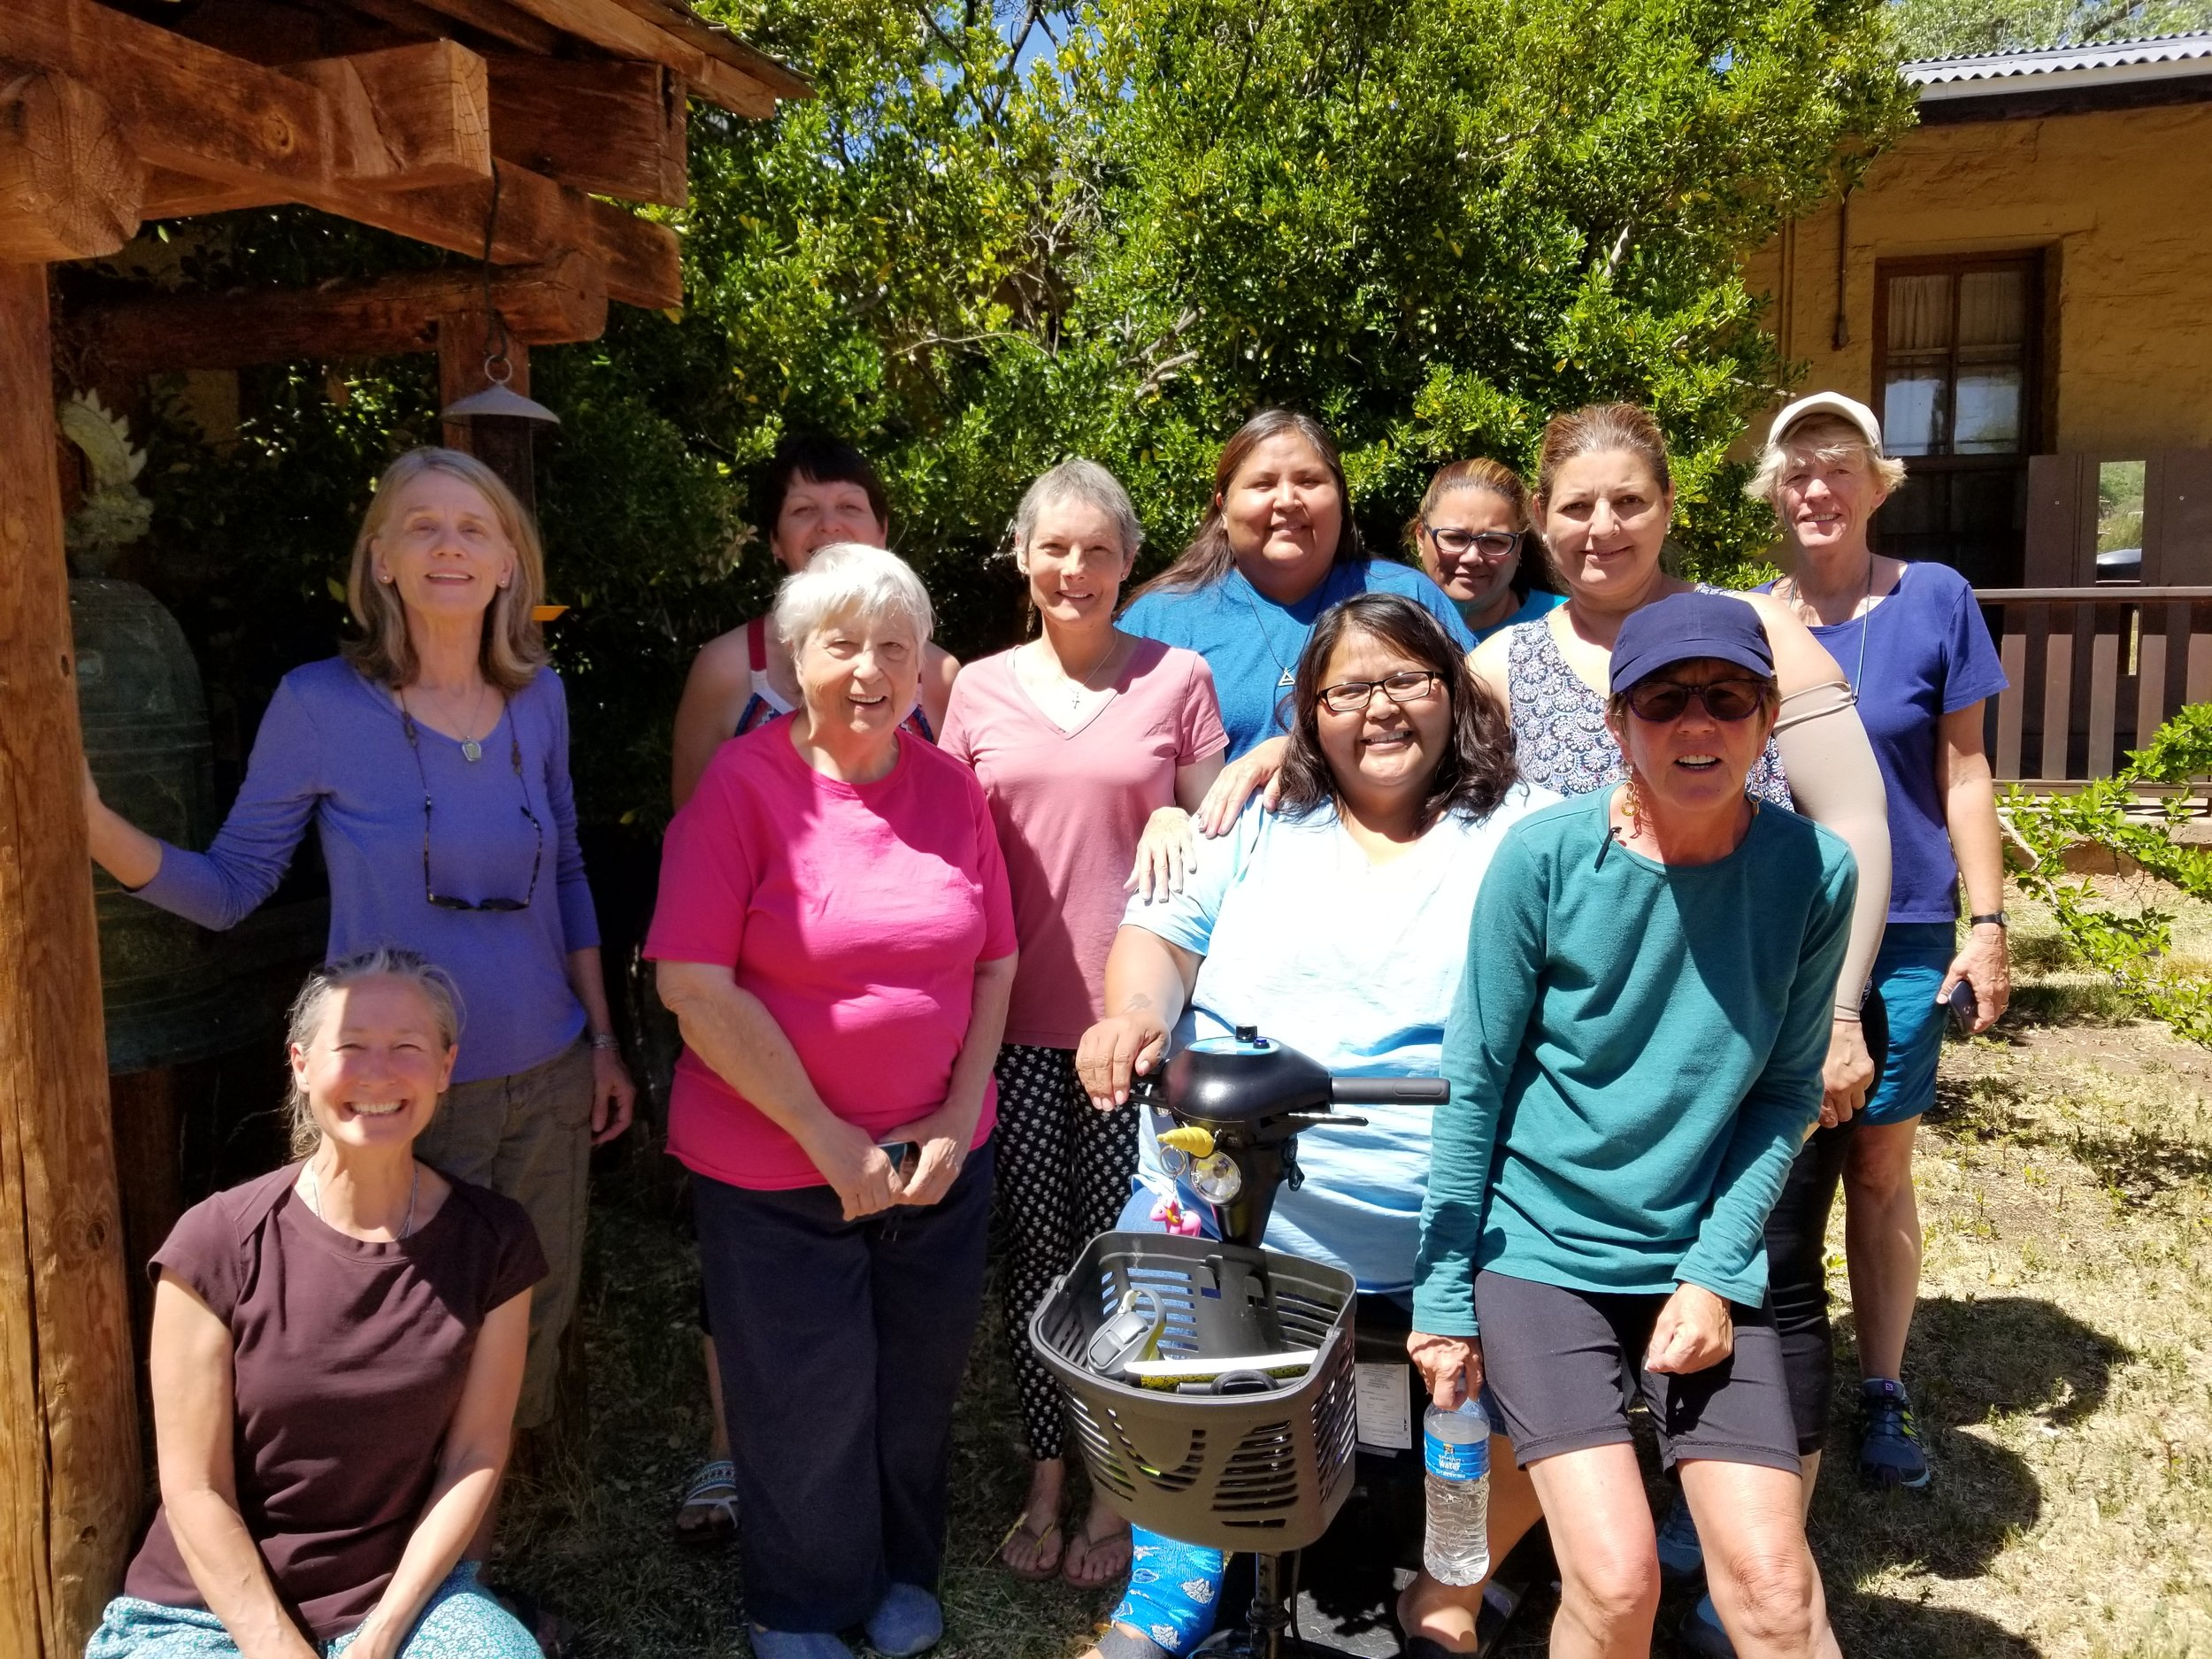 Holding Courage retreat offers support to women with a cancer diagnosis